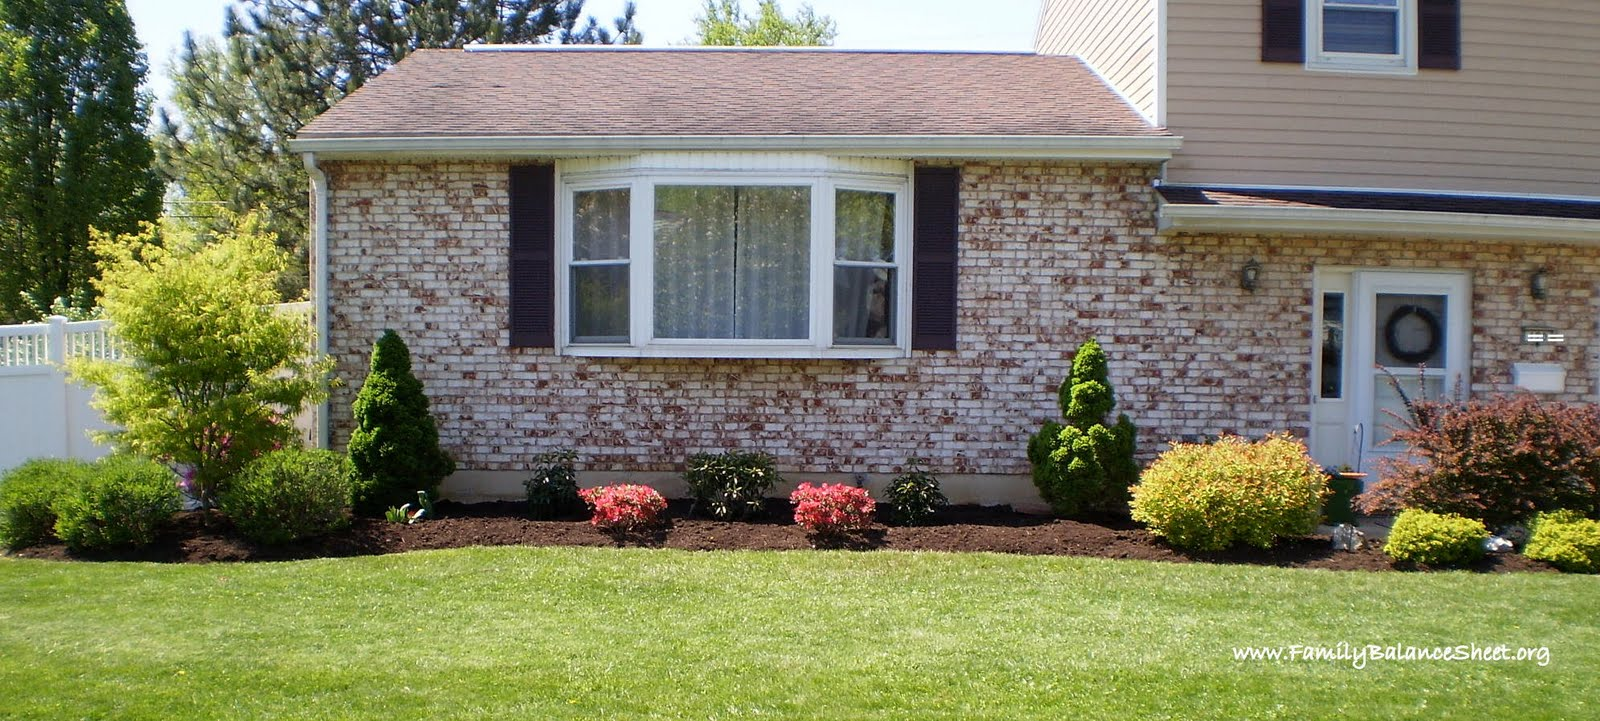 15 tips to help you design your front yard save money too for House garden landscape